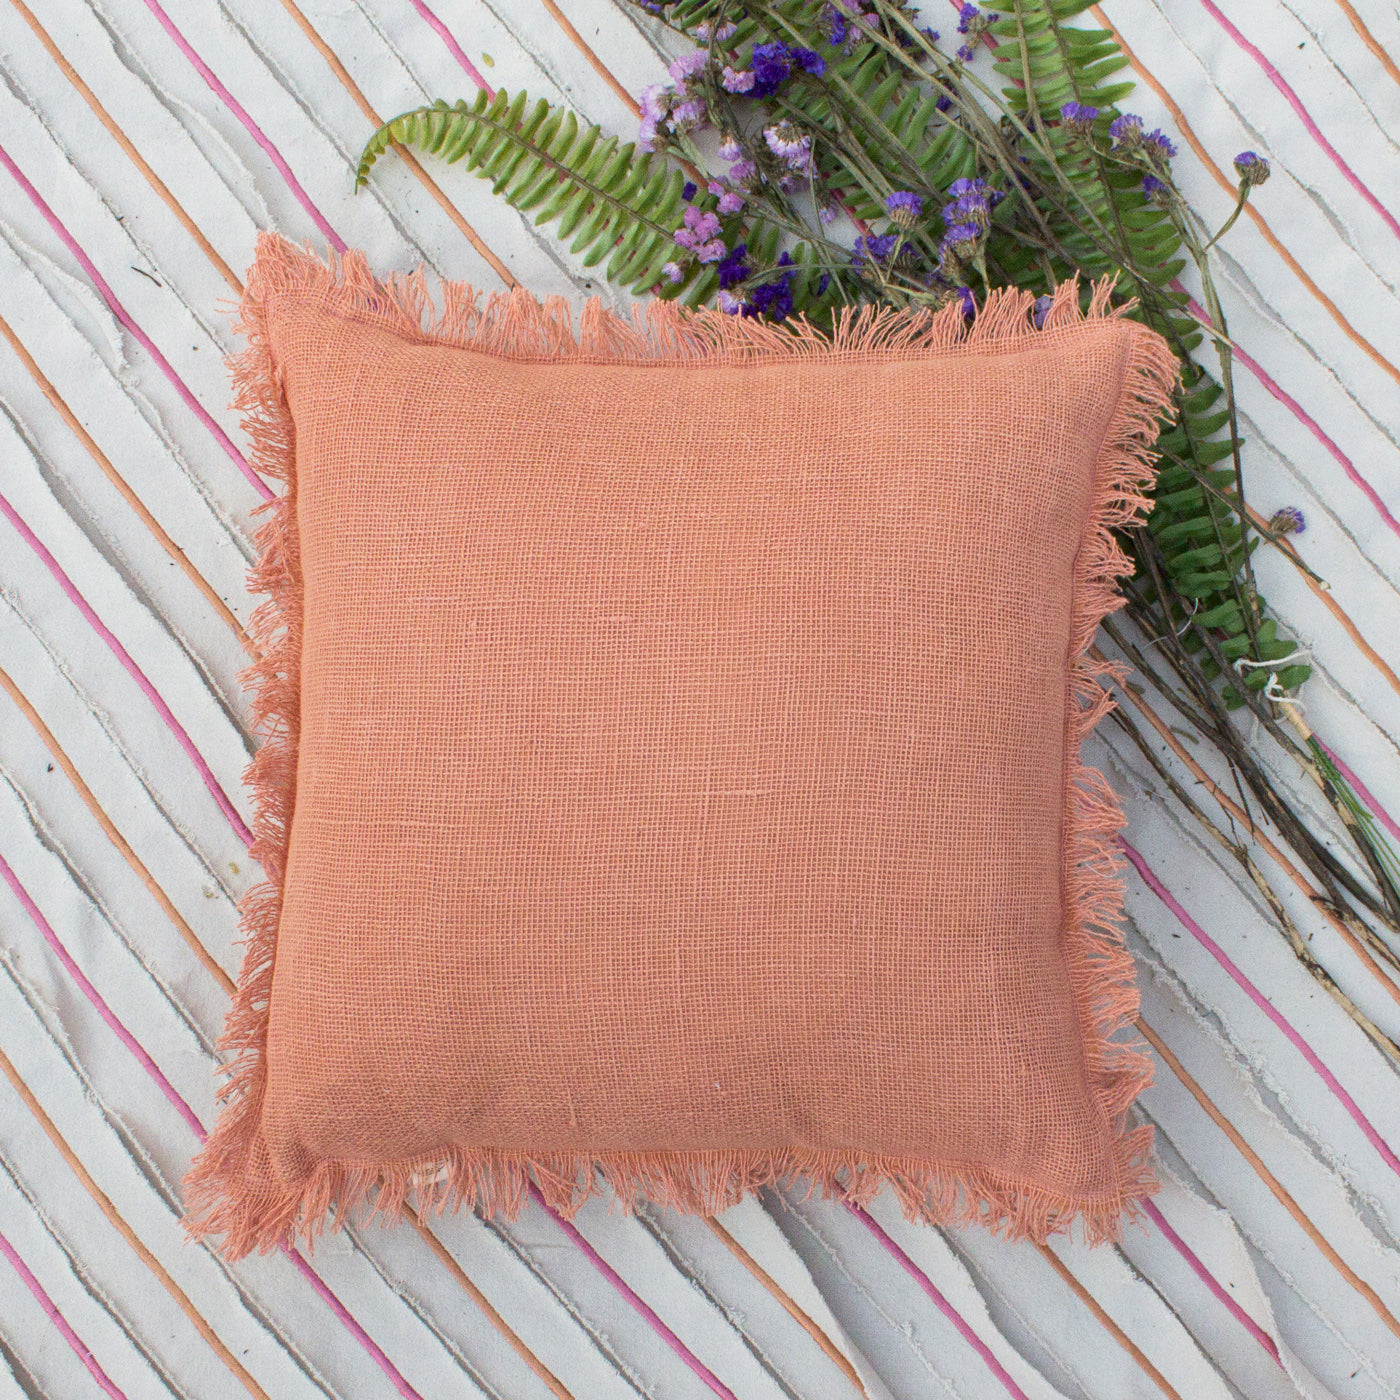 ORANGE BLOSSOM CUSHION COVER